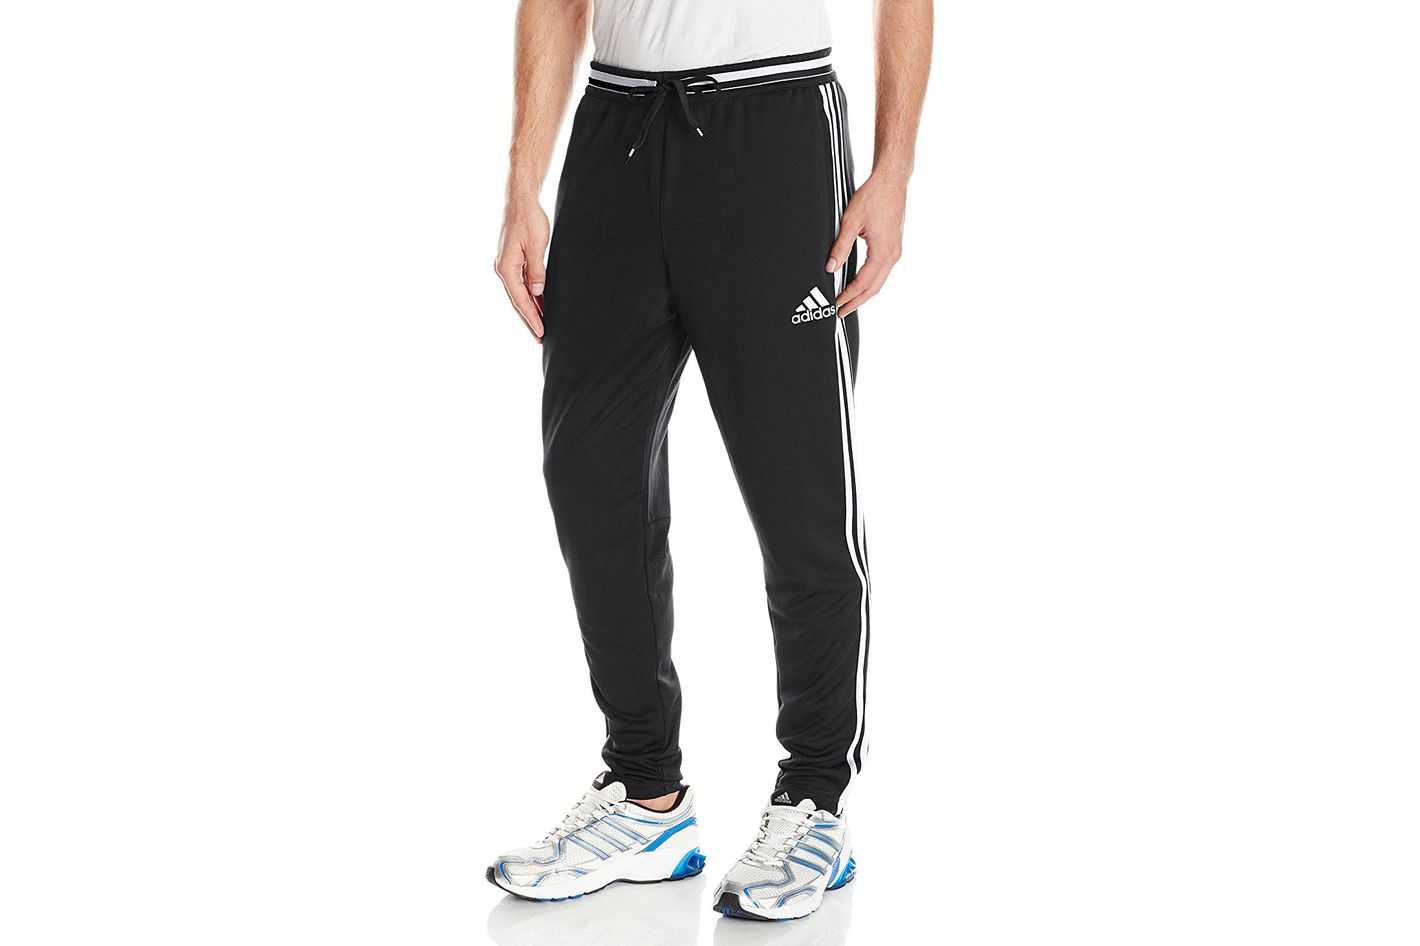 adidas Men's Condivo 16 Training Pants